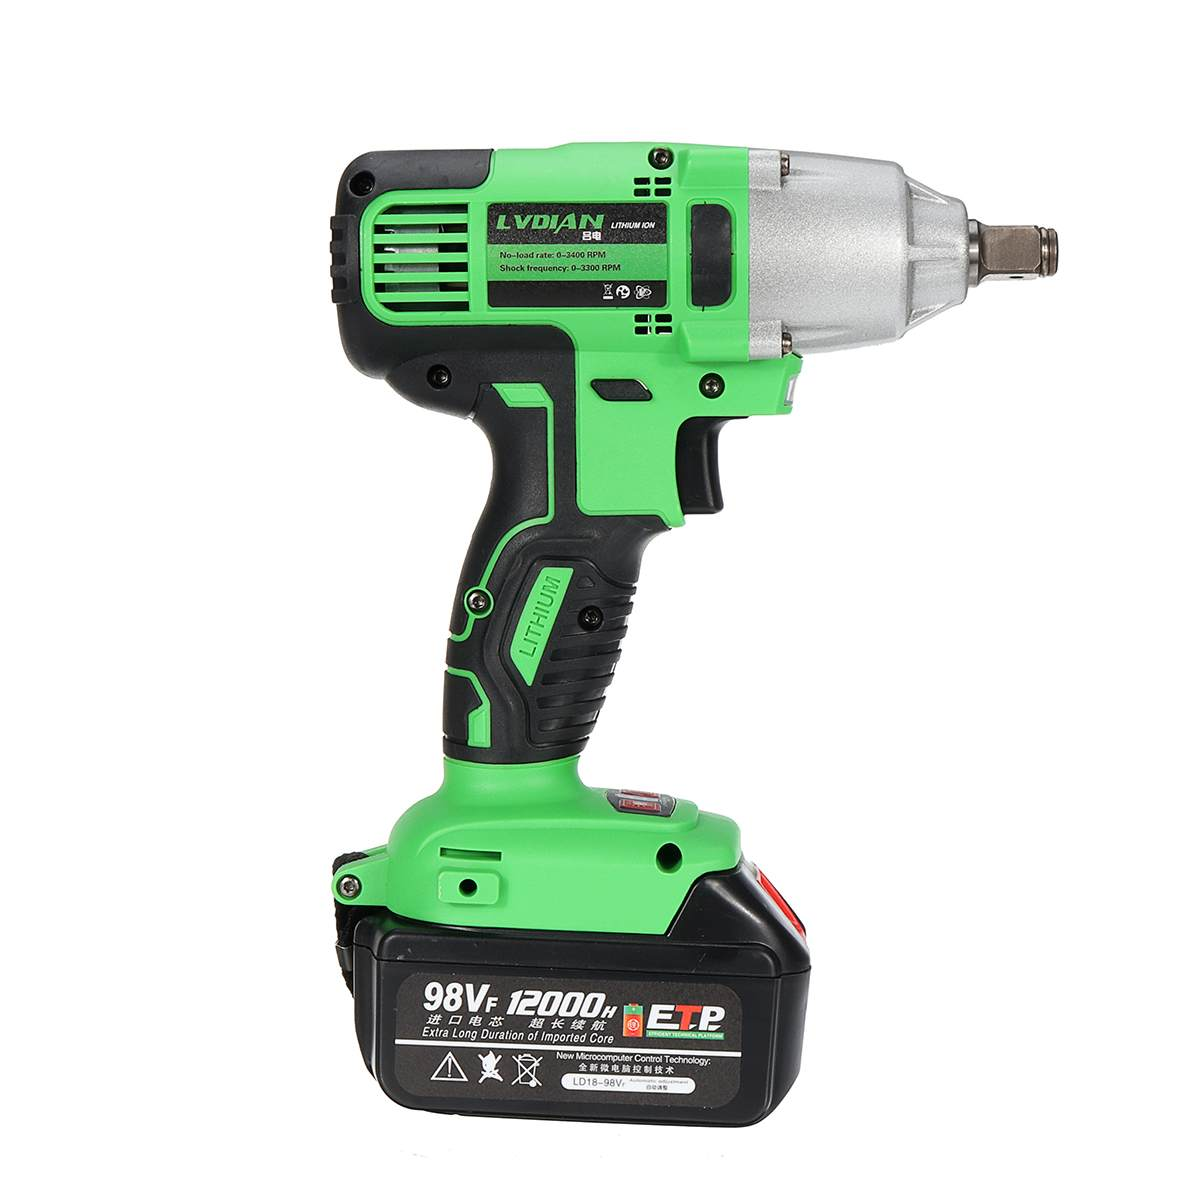 Tools : 98VF 520Nm Cordless Electric Impact Wrench Powerful Drill Screwdriver Home DIY Electric Wrench Power Tool with 12000mah Battery